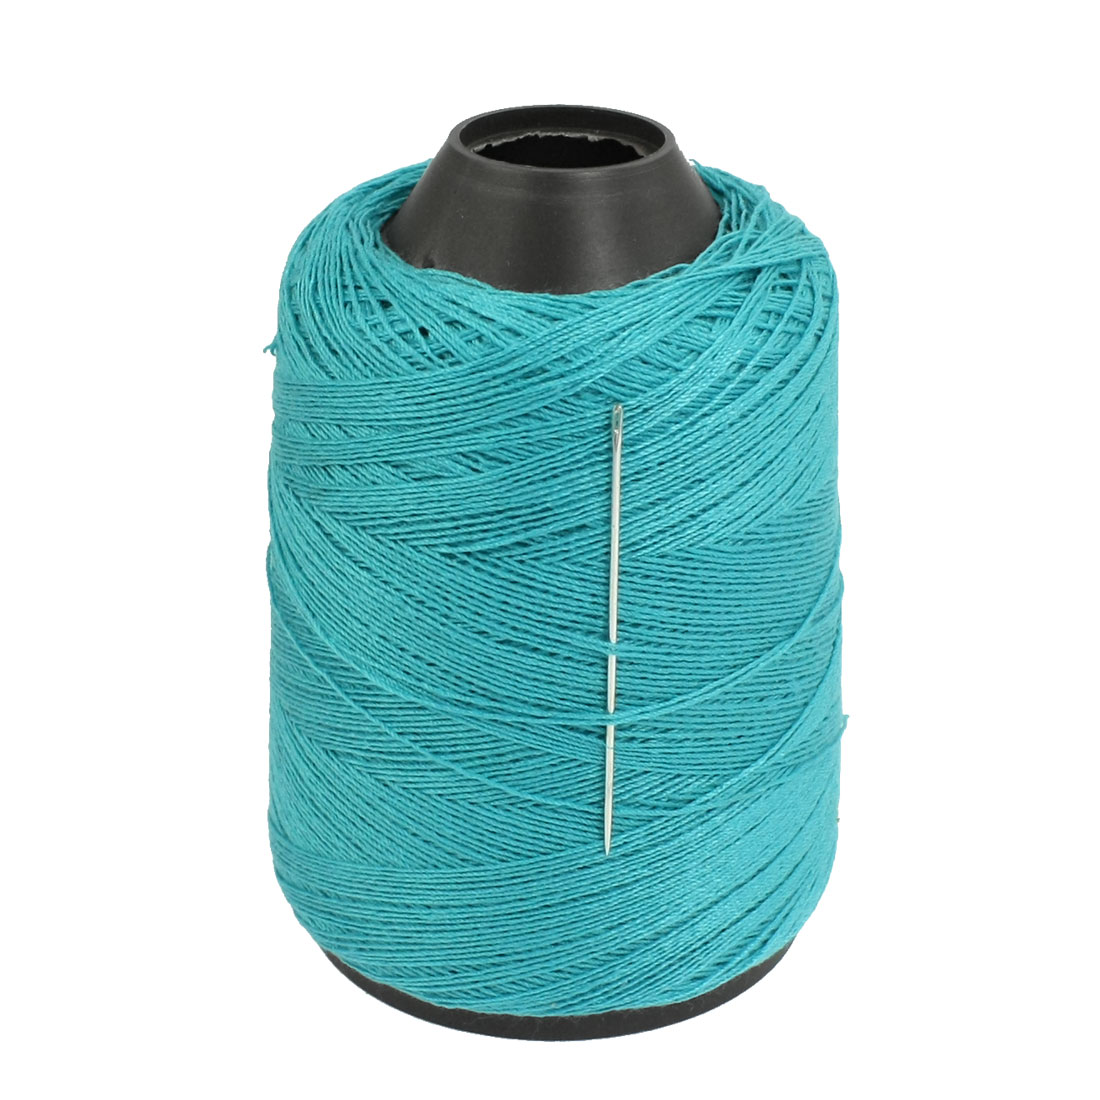 1 Roll Tailor Stitching Line Cotton Sewing Thread Reel Spool Turquoise w Needle